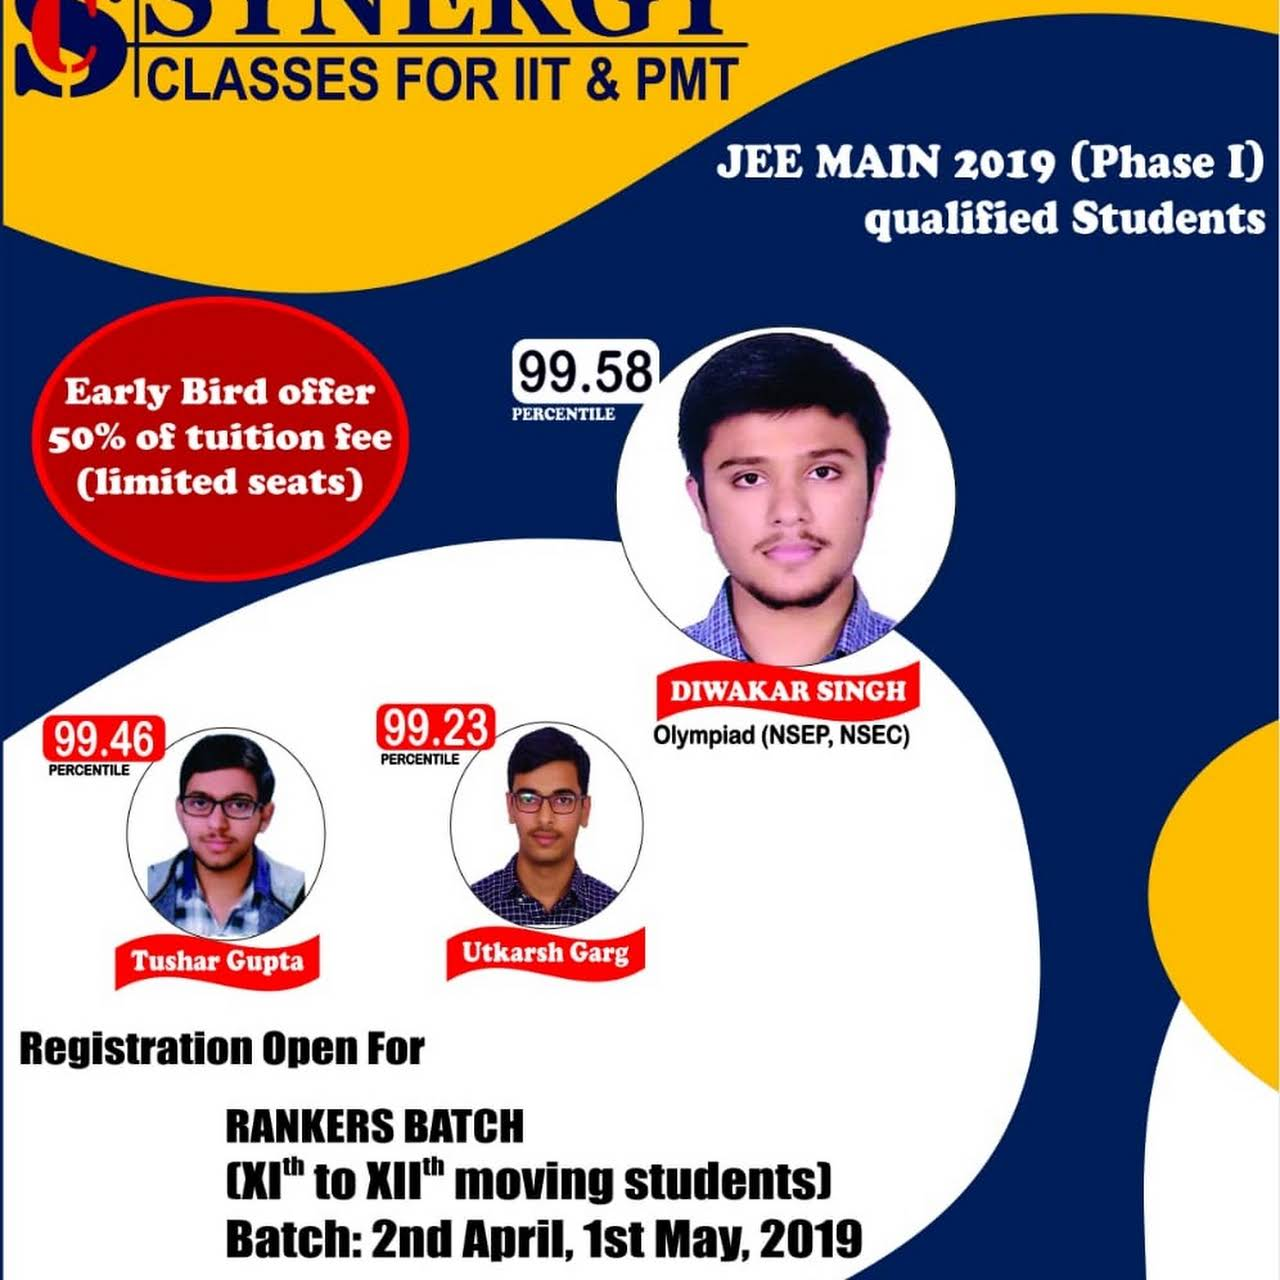 Synergy Classes For IIT & PMT - Engineering Entrance